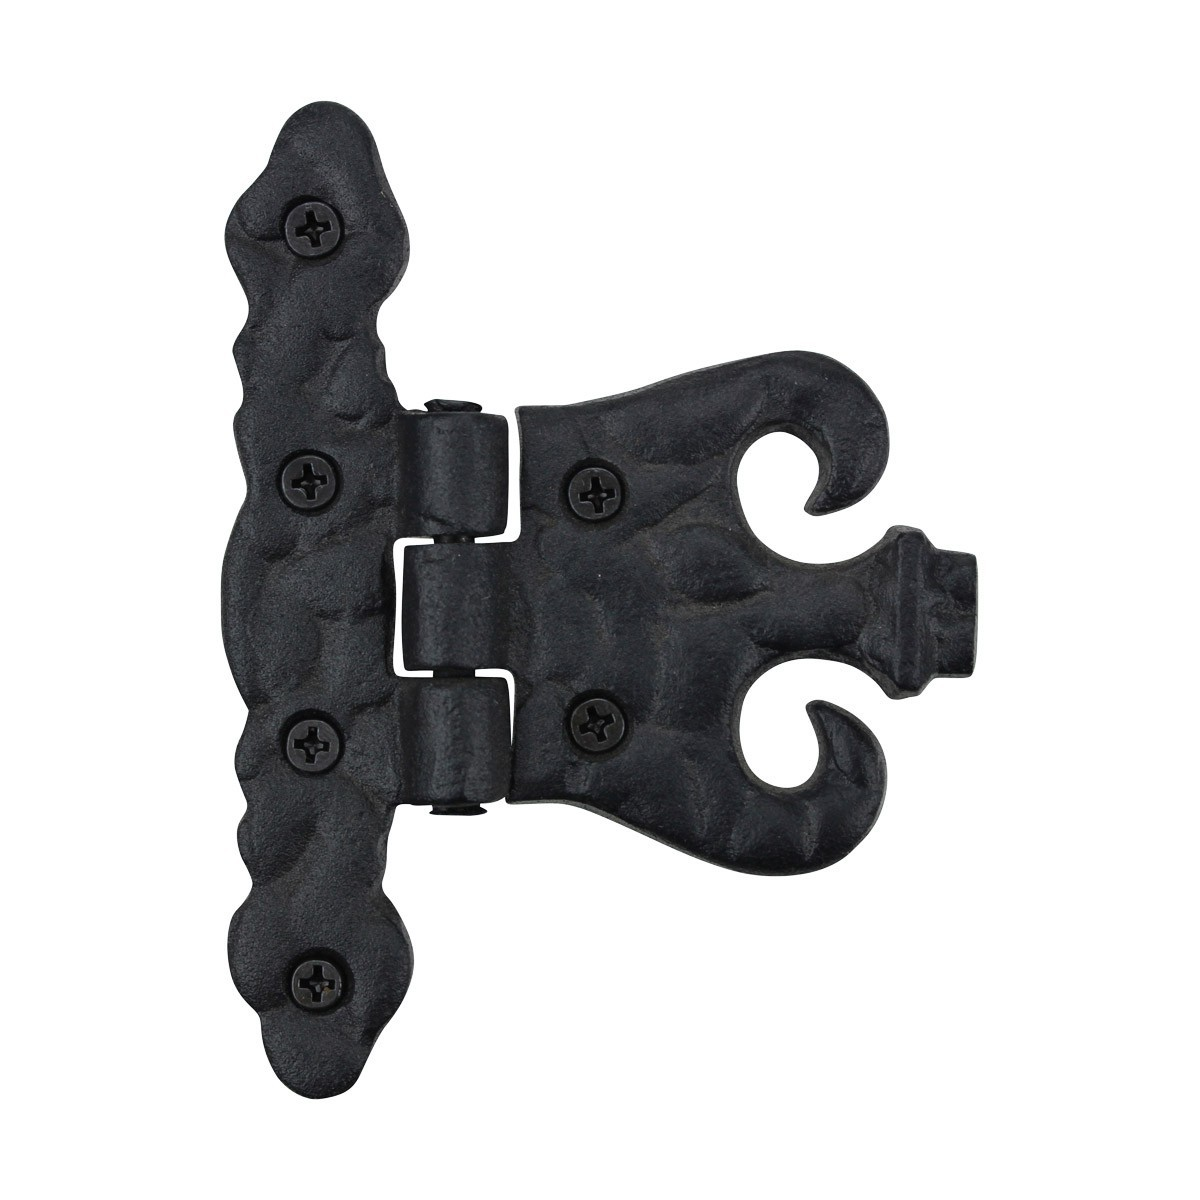 10 Wrought Iron Hinge Black Rustproof Door or Cabinet Door Hinges Cabinet Hinges Black wrought iron cabinet hinge